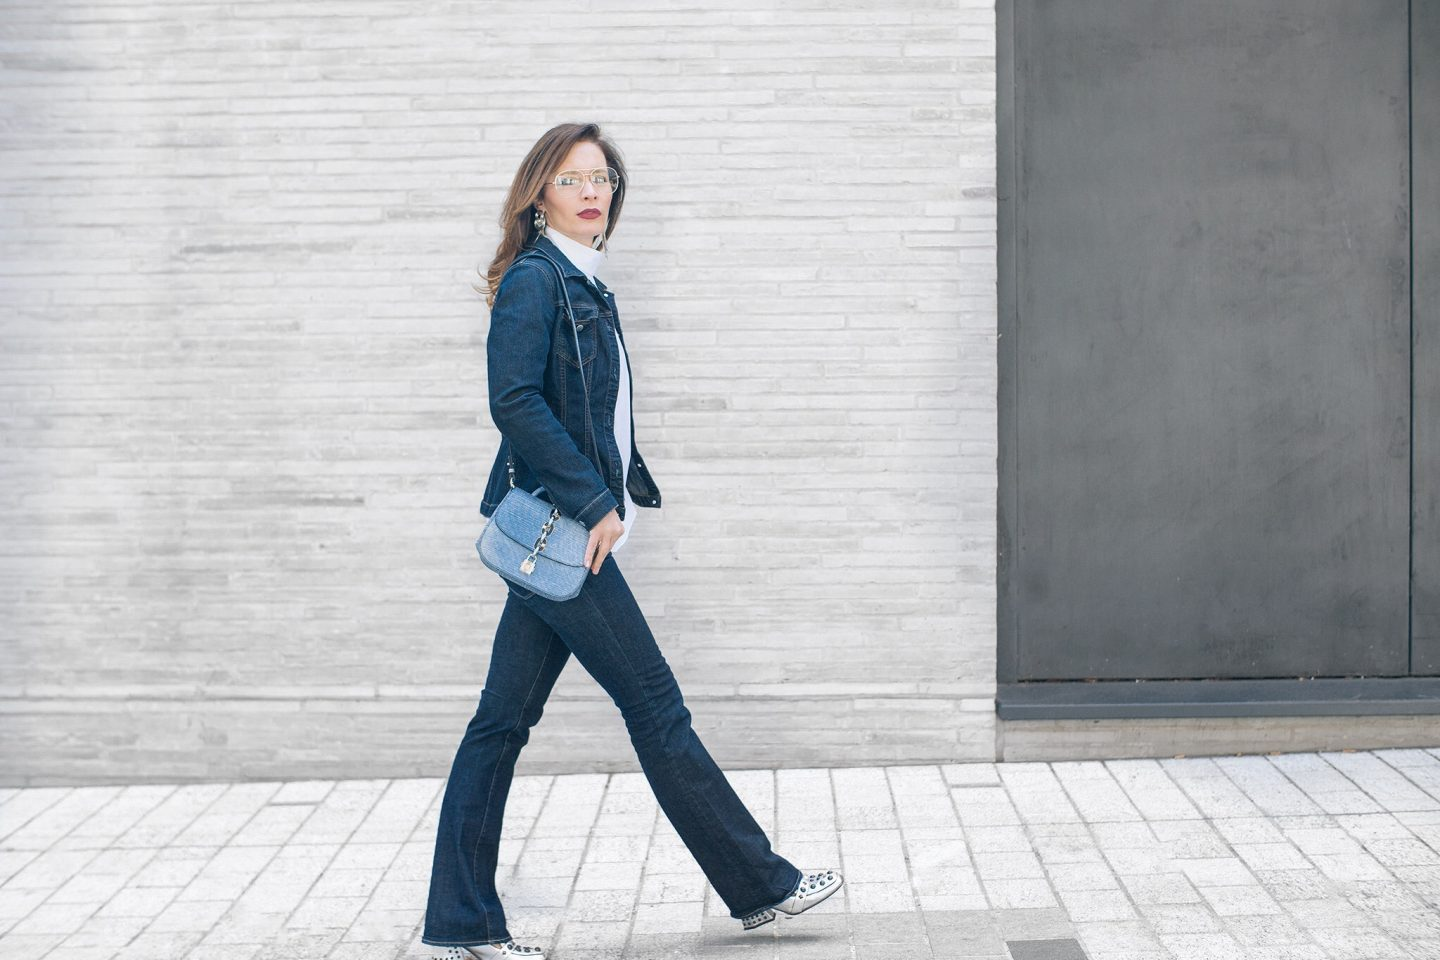 Double denim and how to wear it to look chic